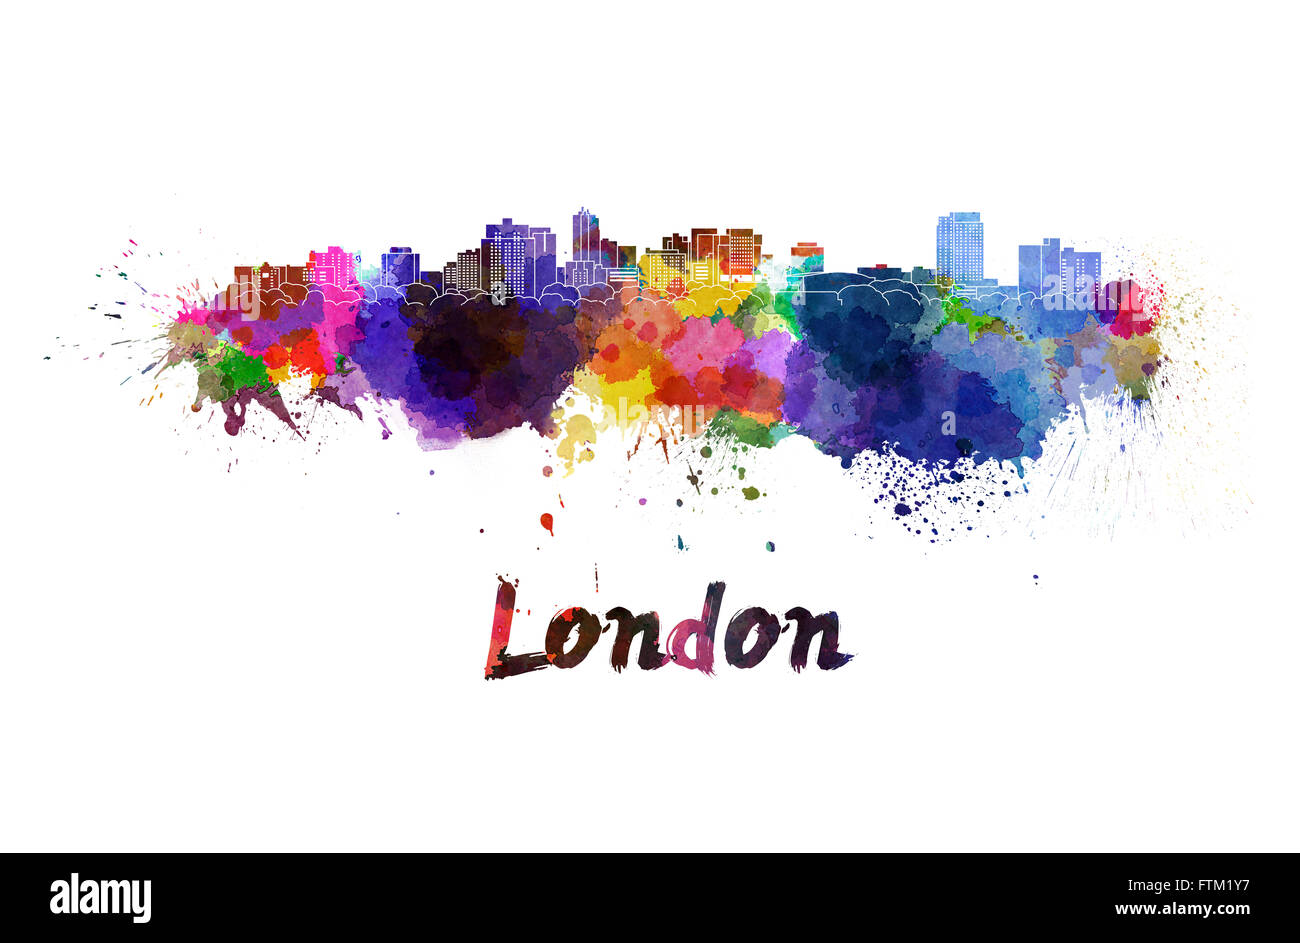 London skyline in watercolor splatters with clipping path - Stock Image